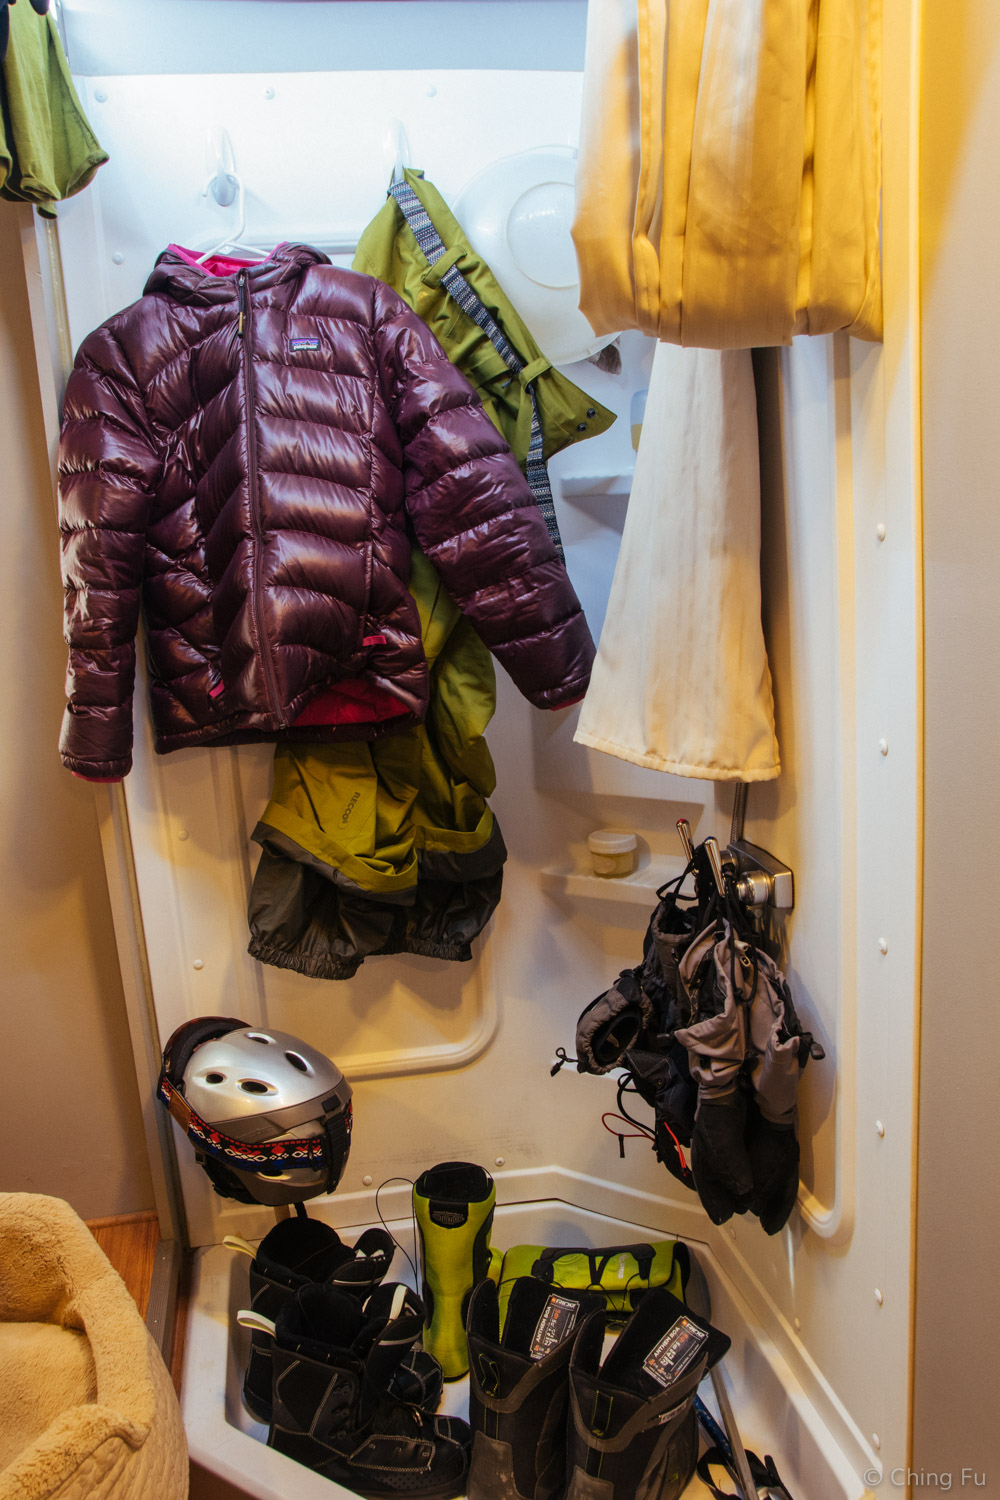 We dry all of our gear and clothing in the shower.